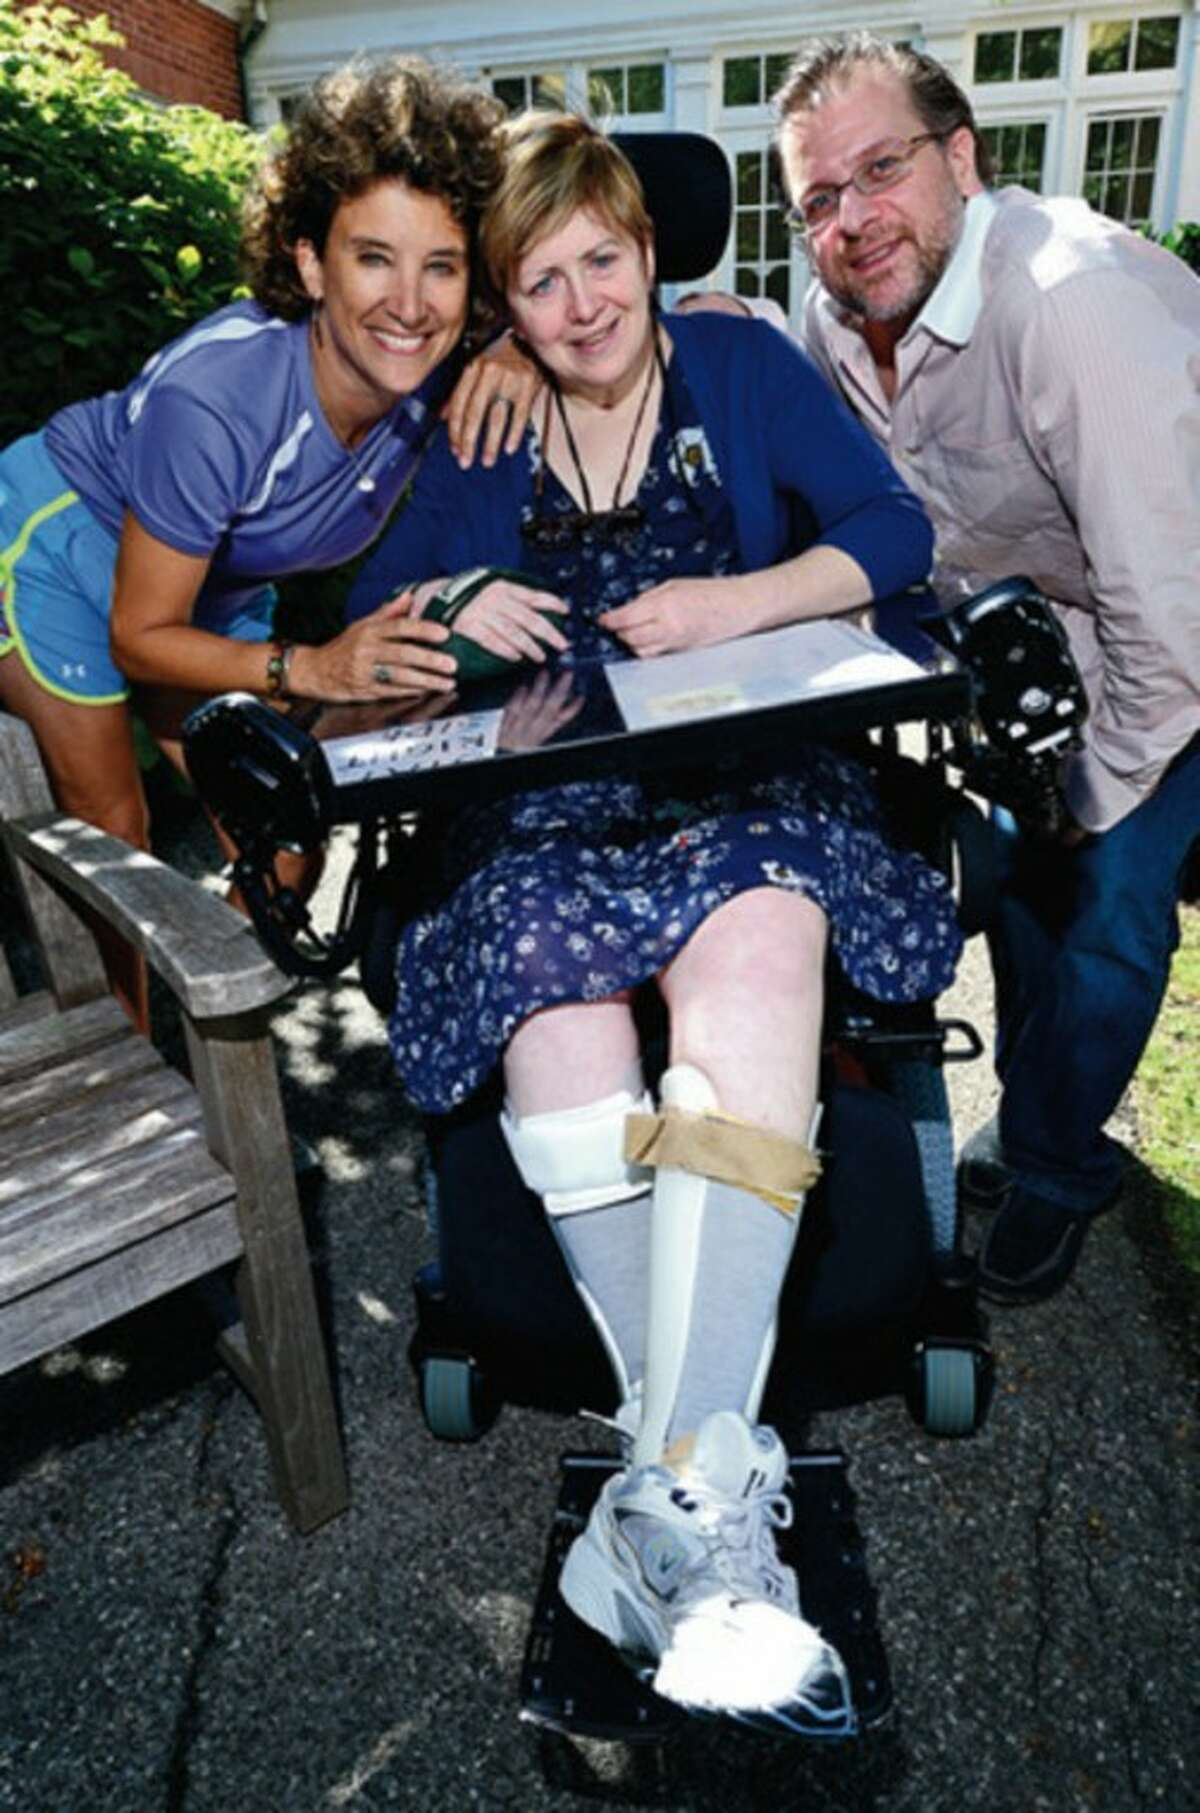 Hour photo / Erik Trautmann Stacy Mehok, who was a cheerleader in the '70s for Westhill, was hurt very badly in a car crash and has been in a wheelchair since.